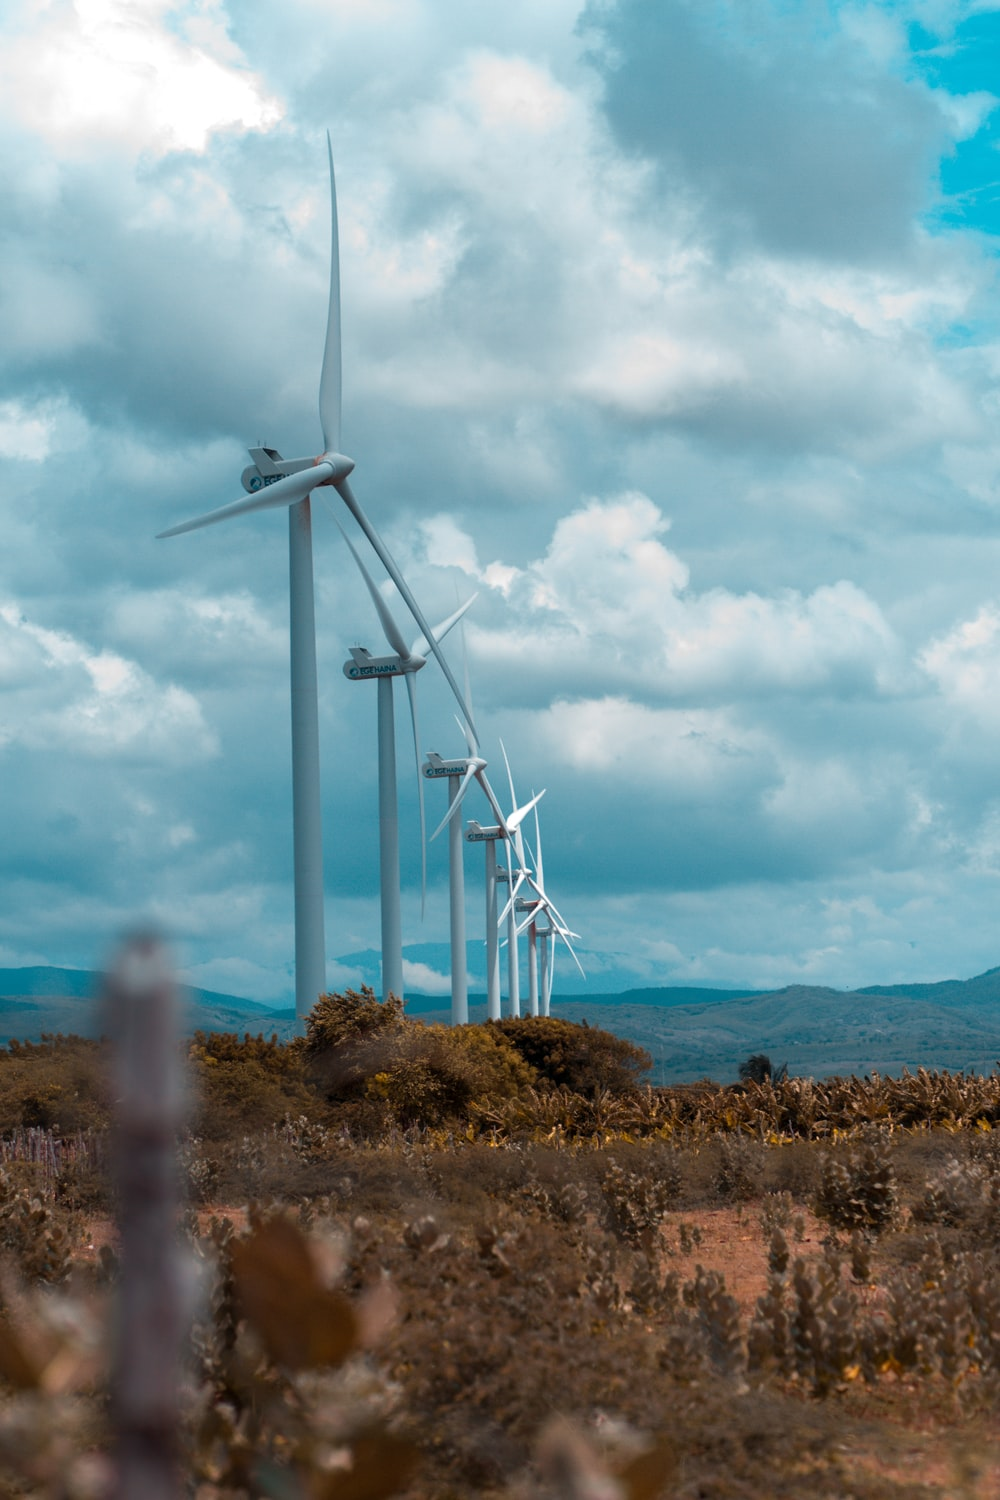 white wind turbines on green grass field under white clouds and blue sky during daytime